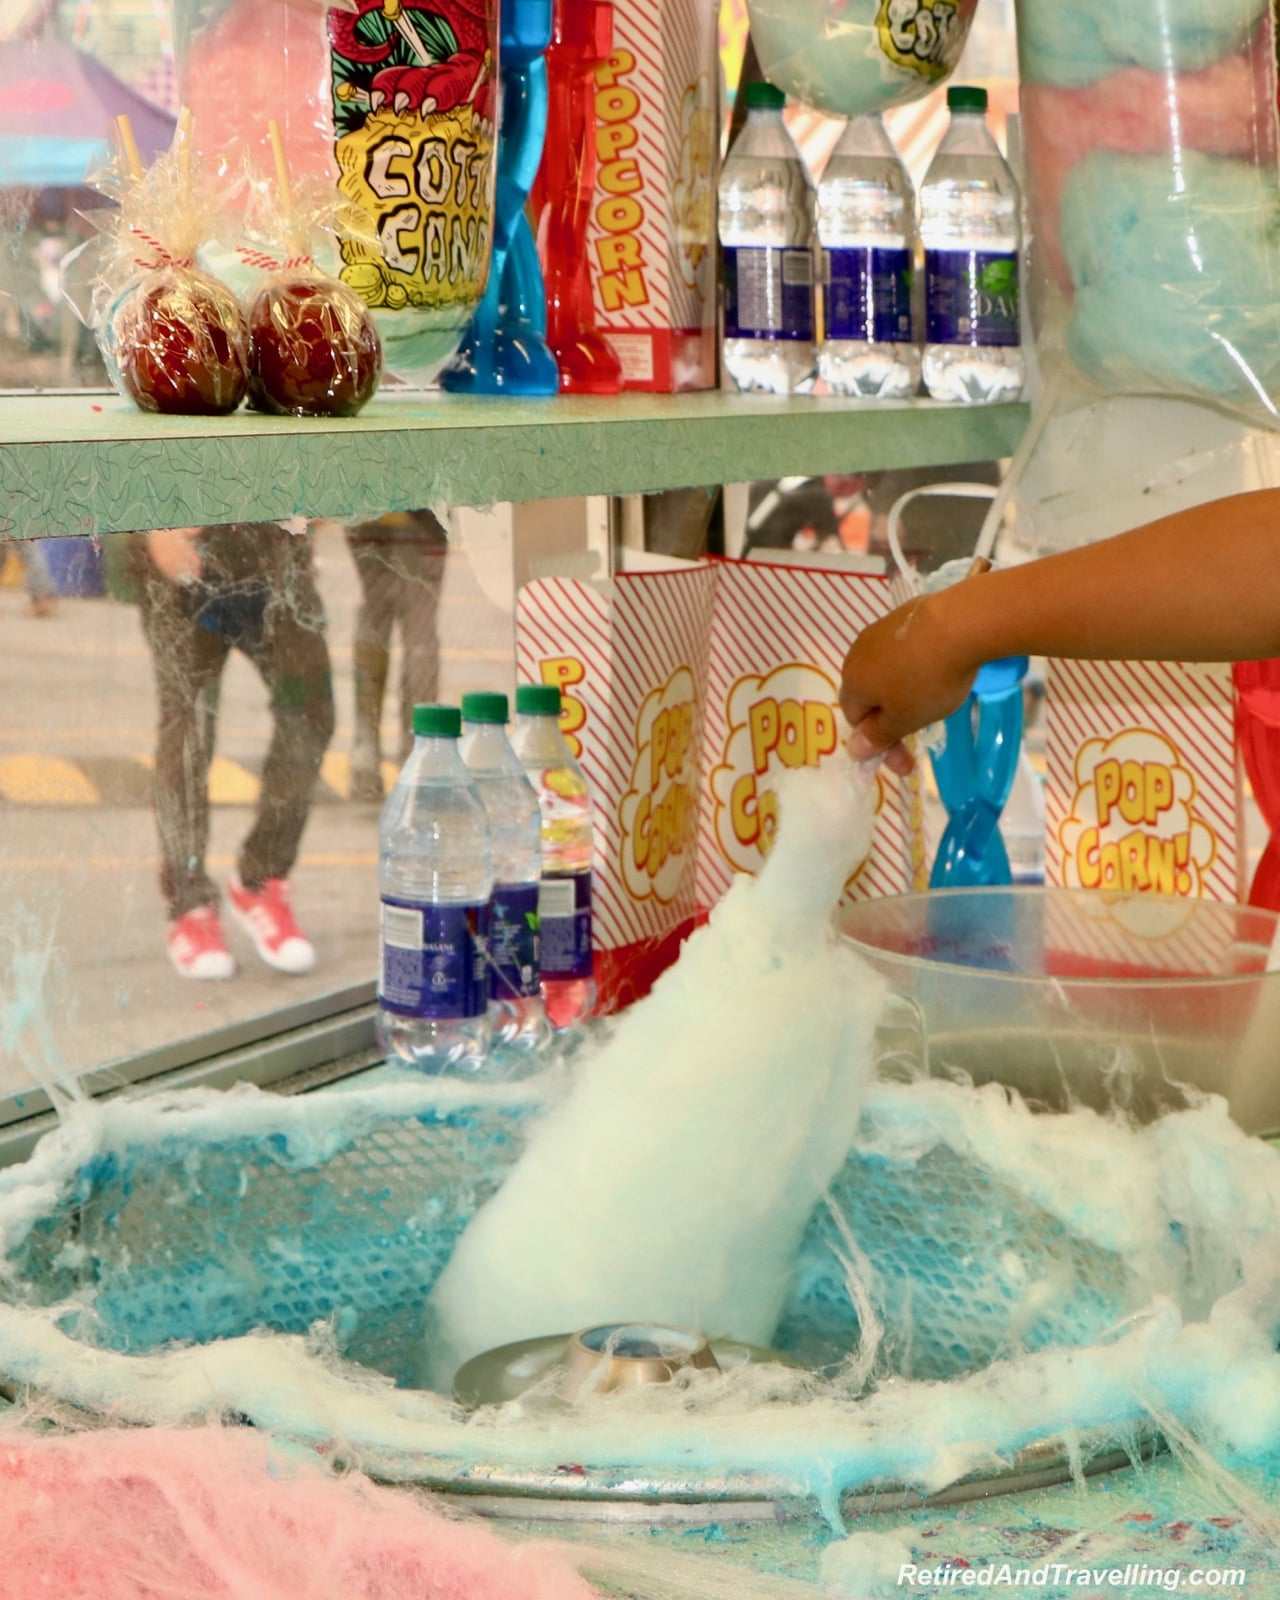 Food cotton candy making - Things To Do At The Toronto CNE.jpg